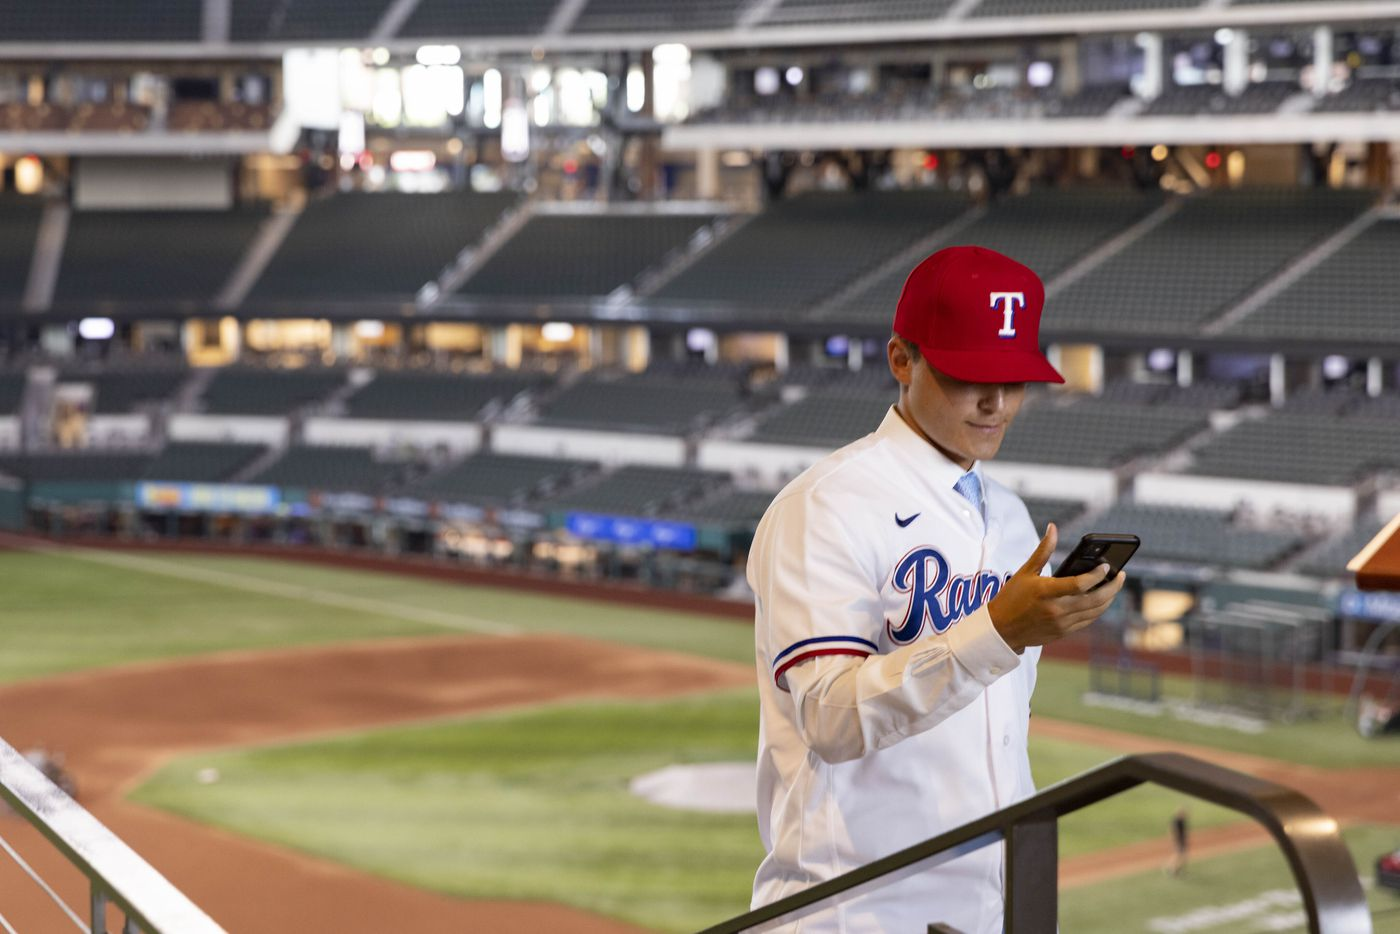 Jack Leiter (left) from Vanderbilt University looks at a selfie he took following a press conference announcing his signing to the Texas Rangers on Tuesday, July 27, 2021, at Globe Life Field in Arlington. Leiter was the club's 2021 MLB Draft first round selection and the draft's second overall pick. (Juan Figueroa/The Dallas Morning News)